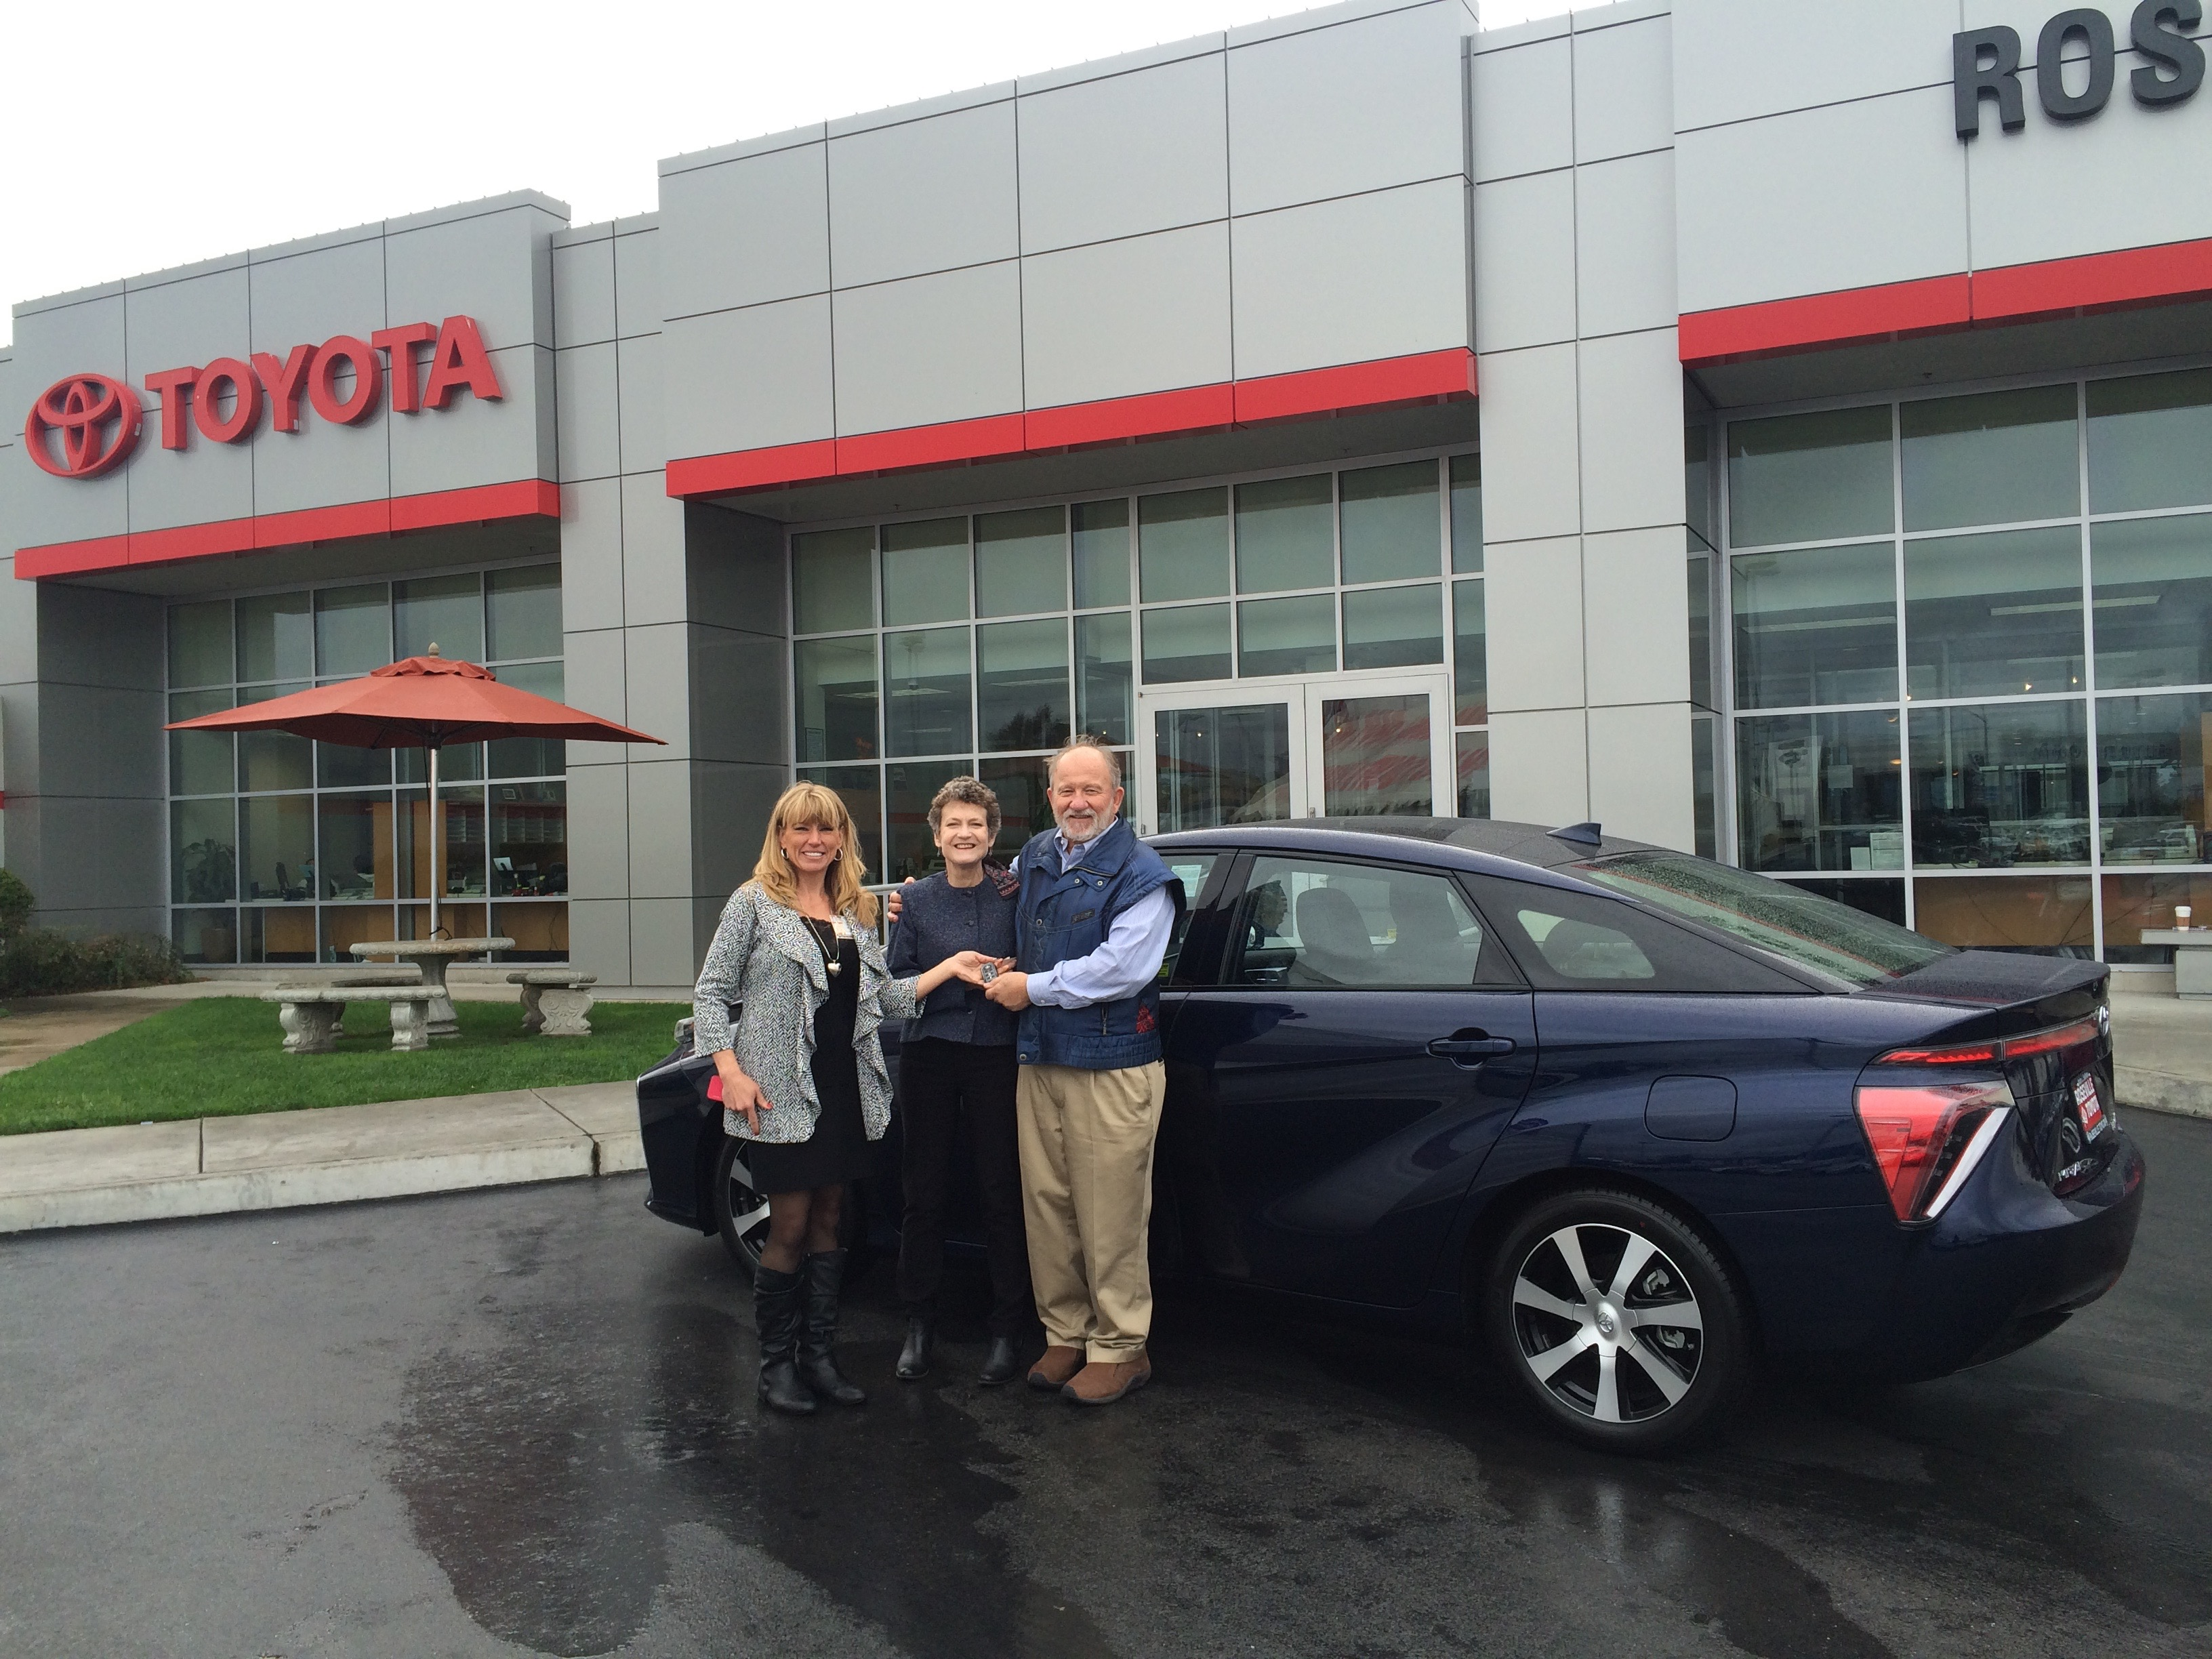 automall dr roseville reviews ca toyota number repair auto yelp phone o biz